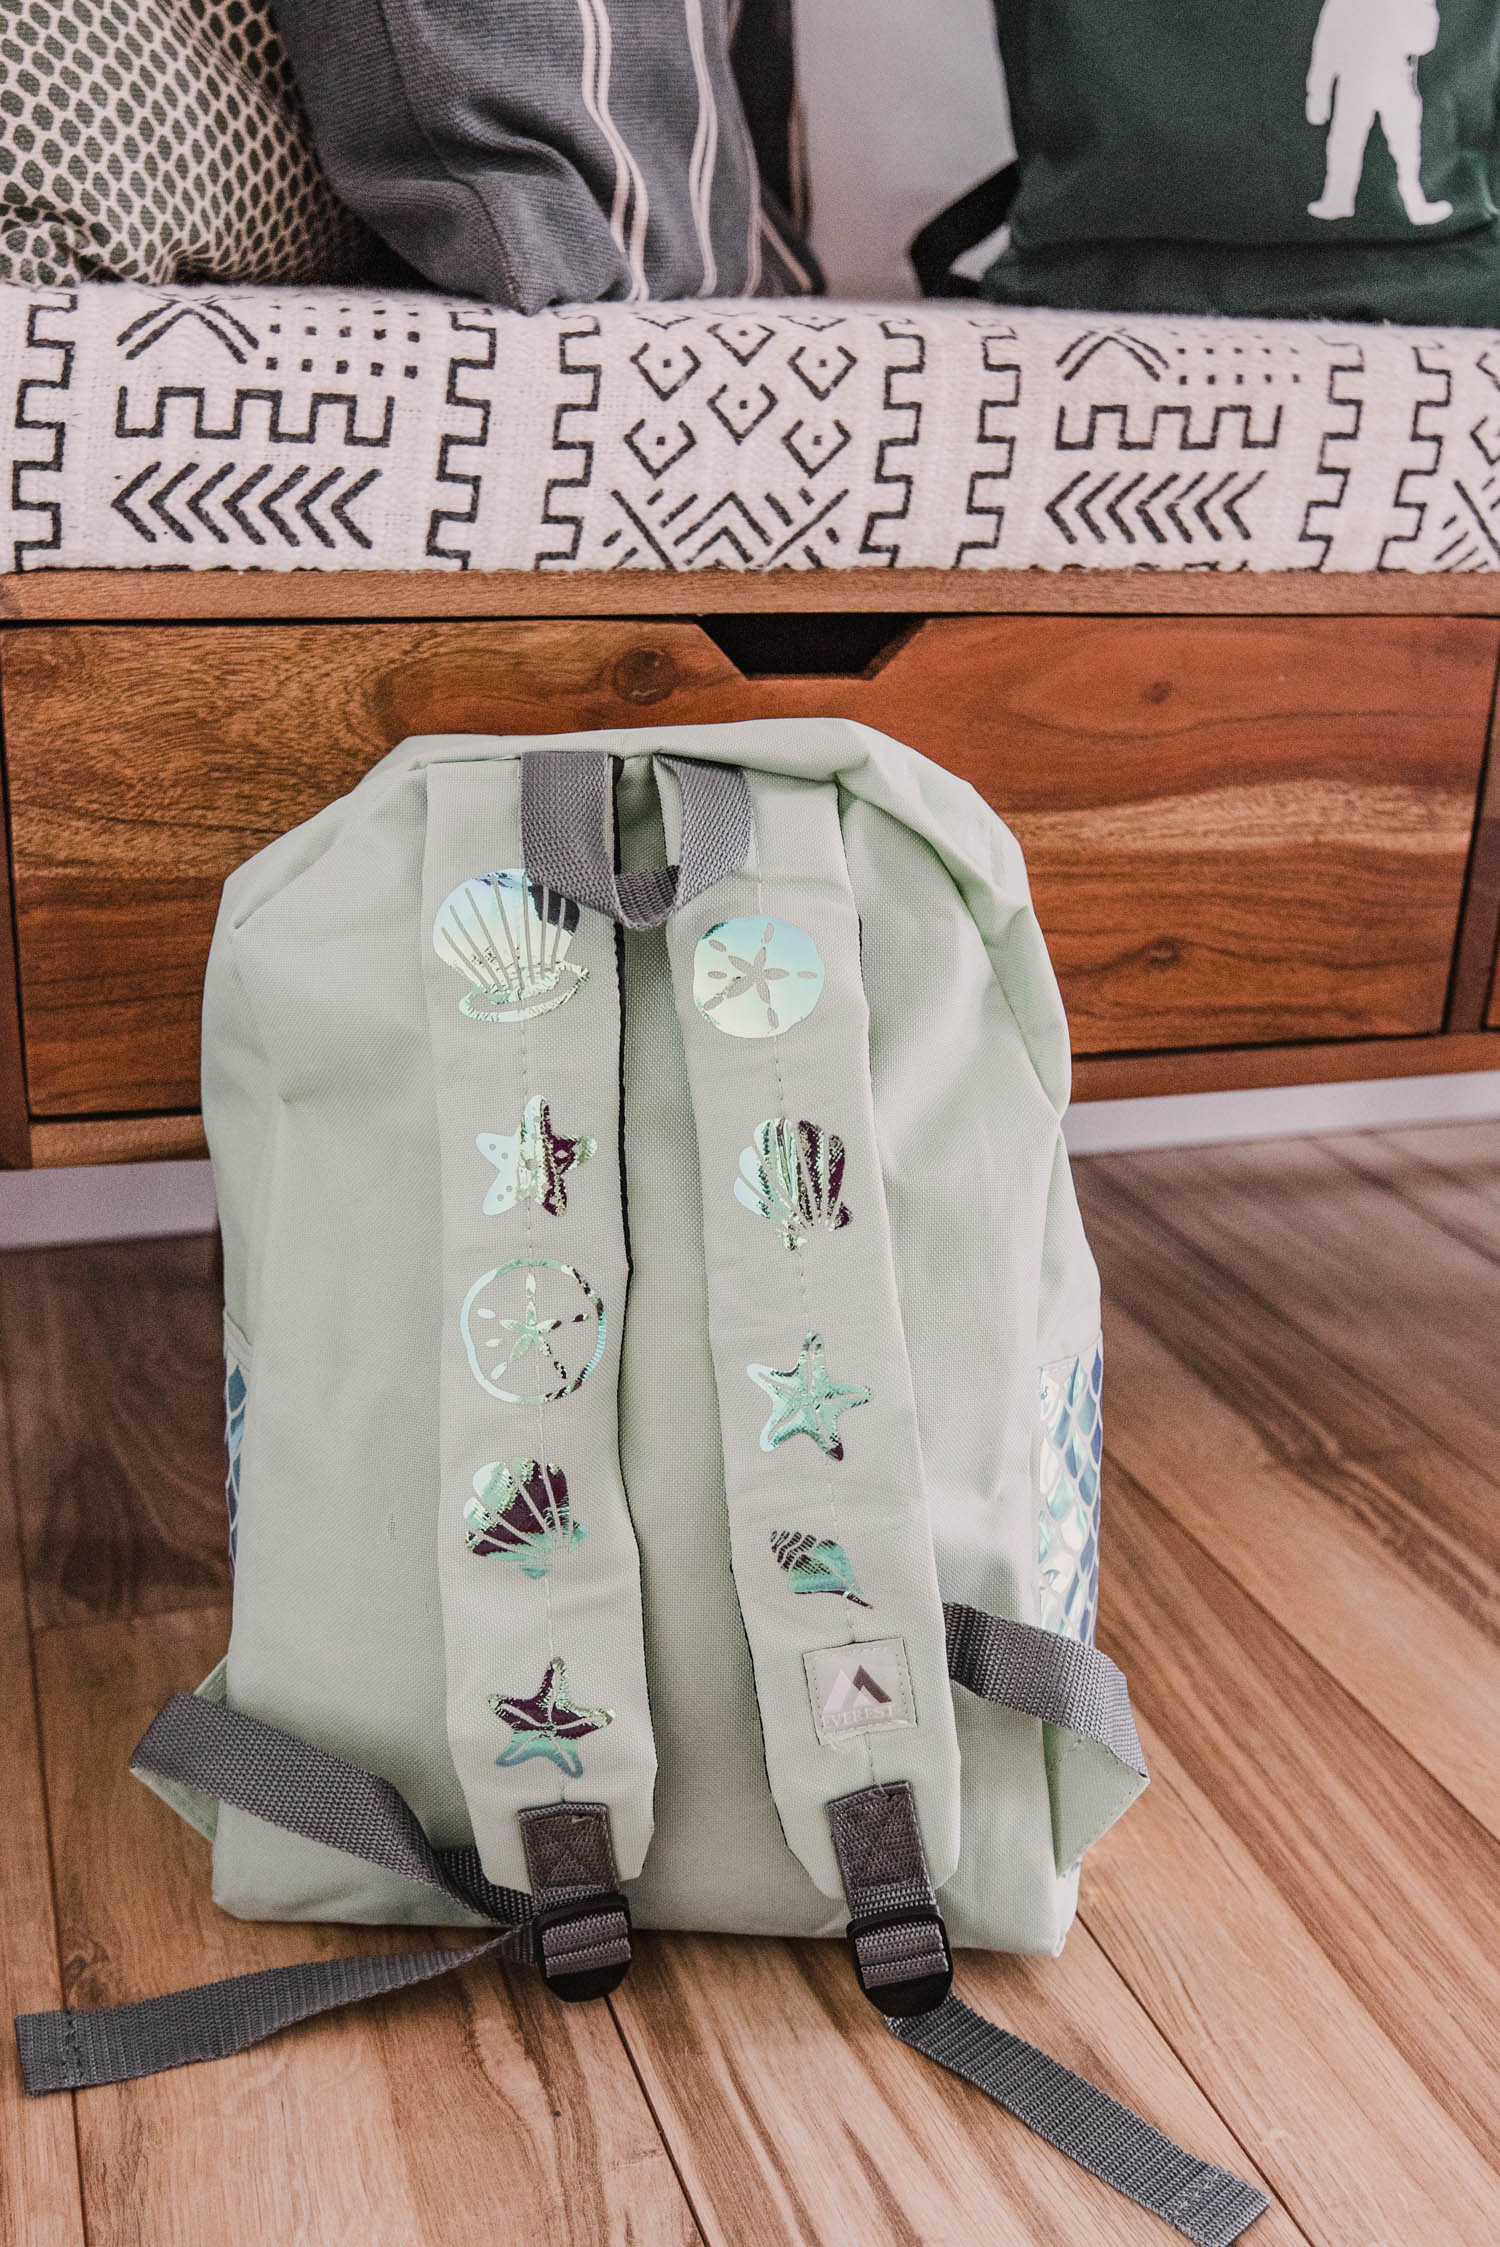 Mermaid themed backpack DIY